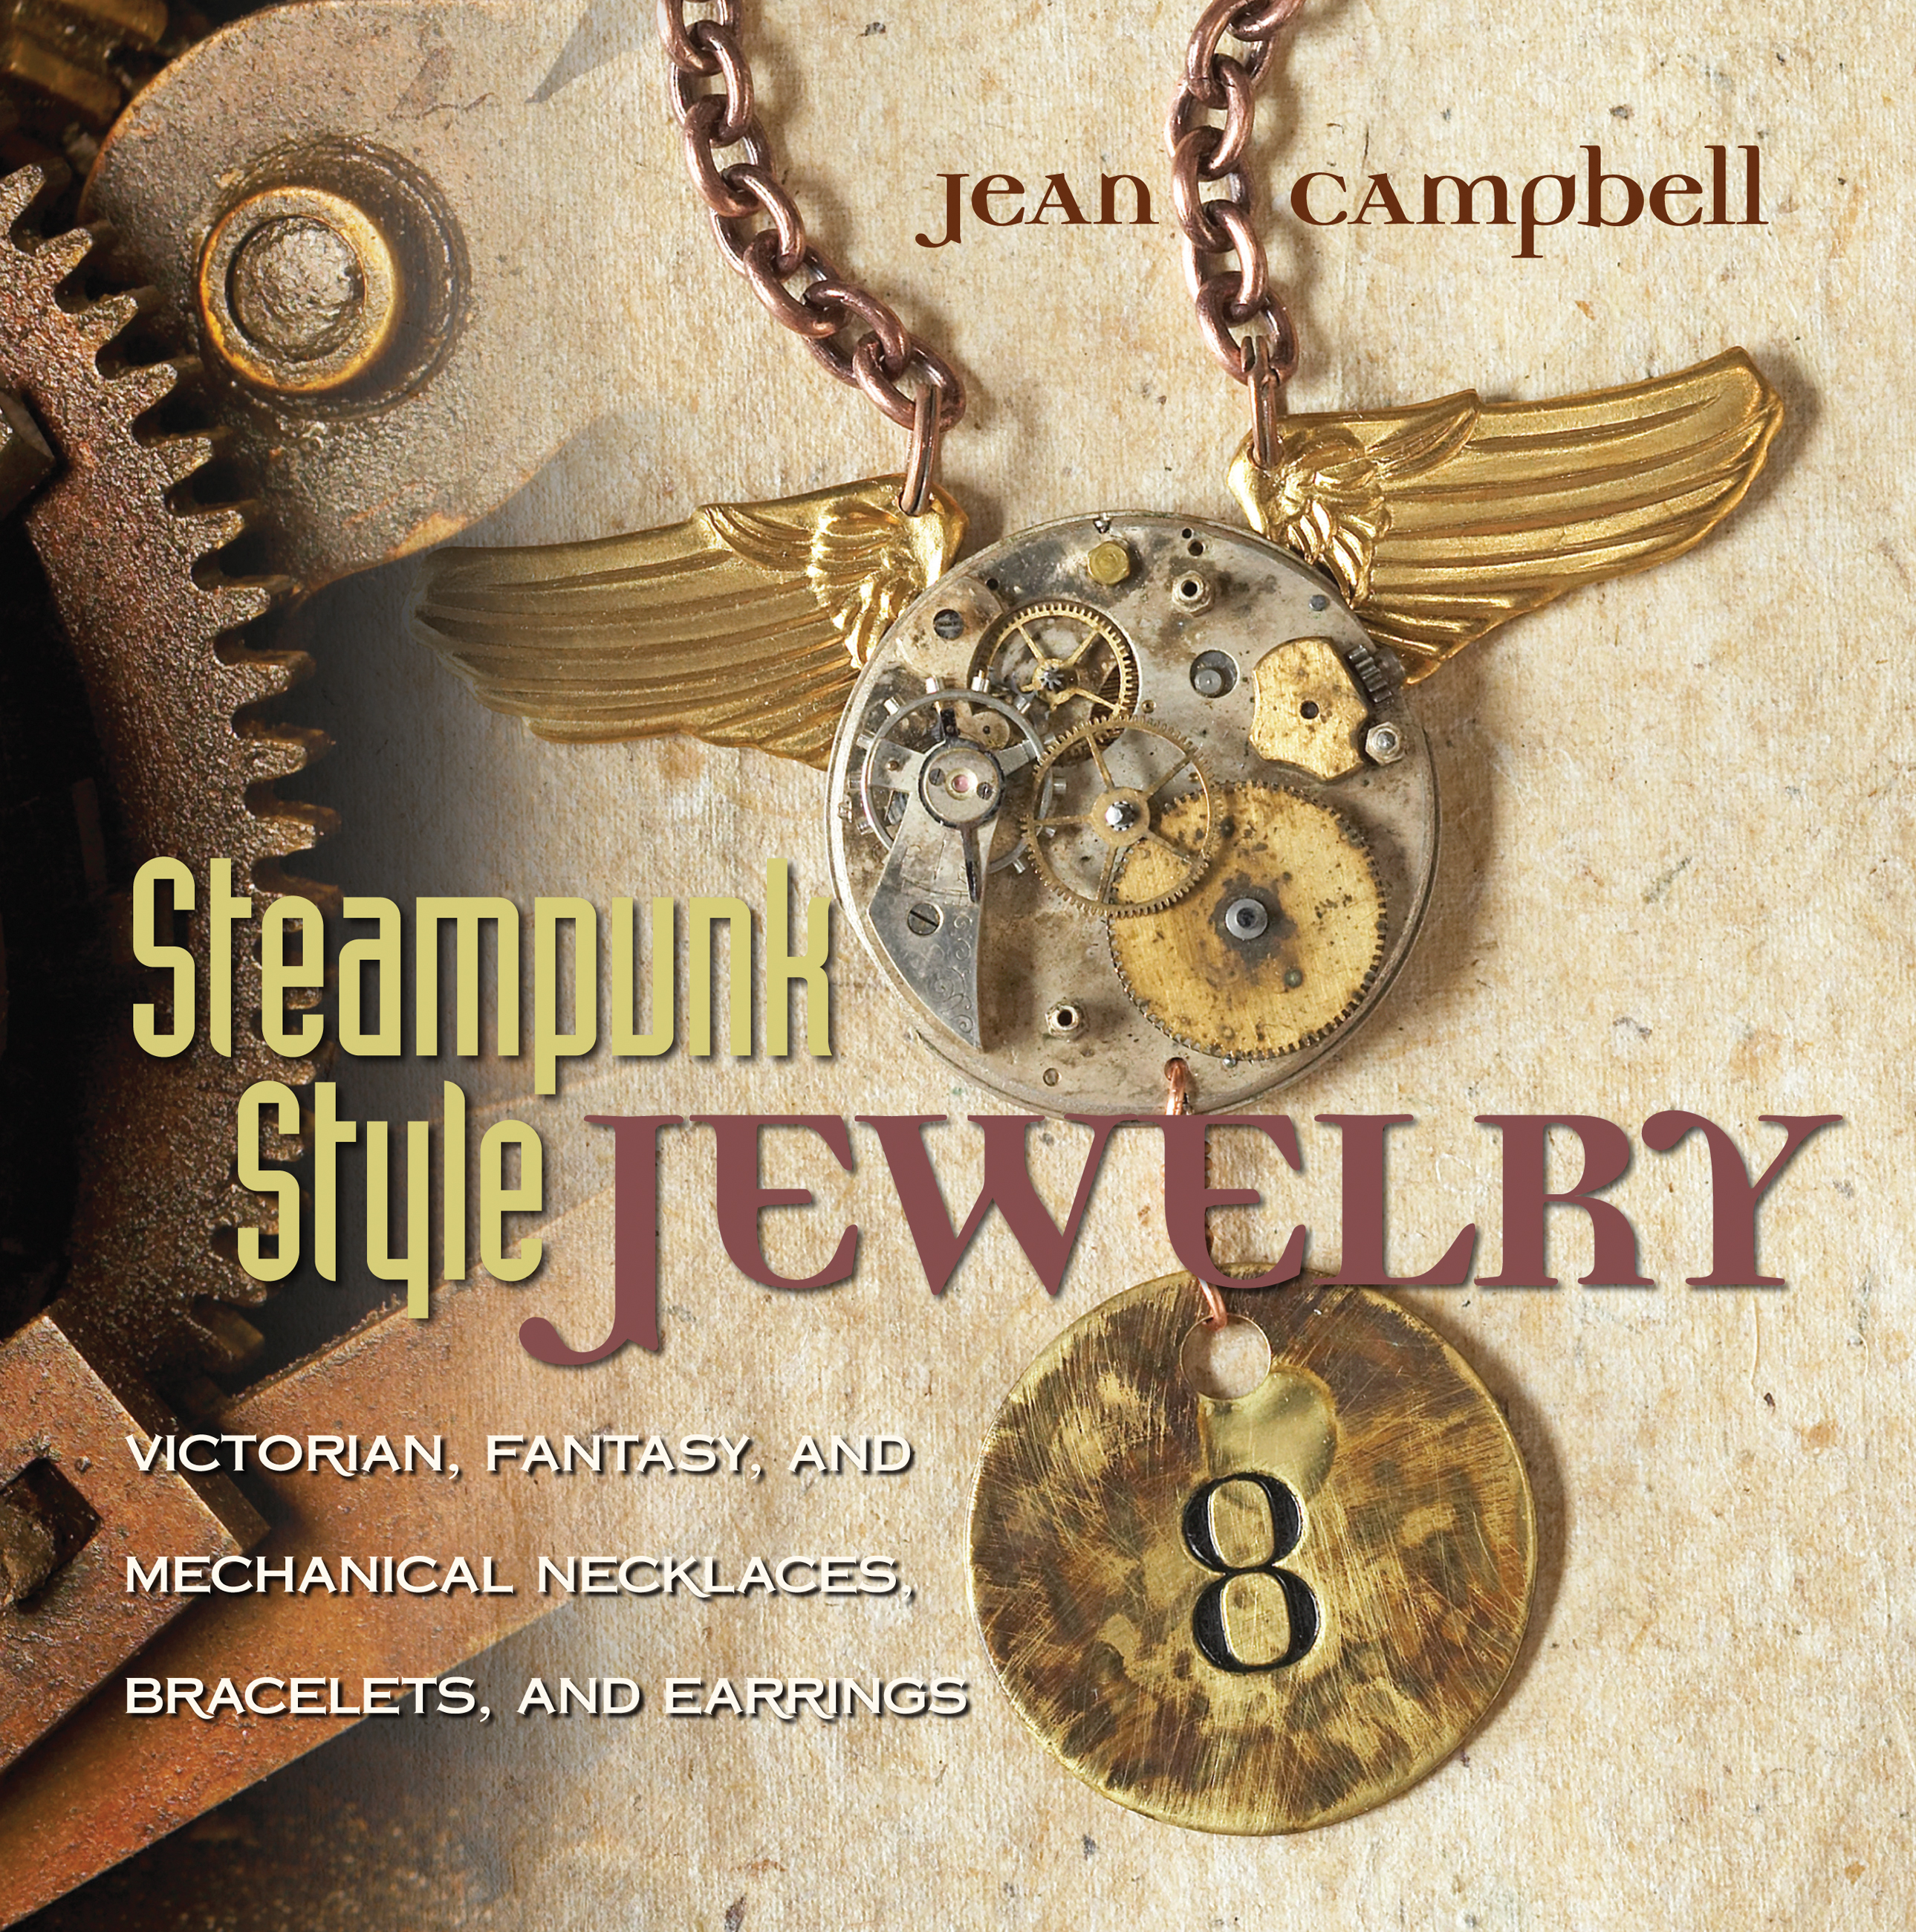 Steampunk Style Jewelry Victorian, Fantasy, and Mechanical Necklaces, Bracelets, and Earrings